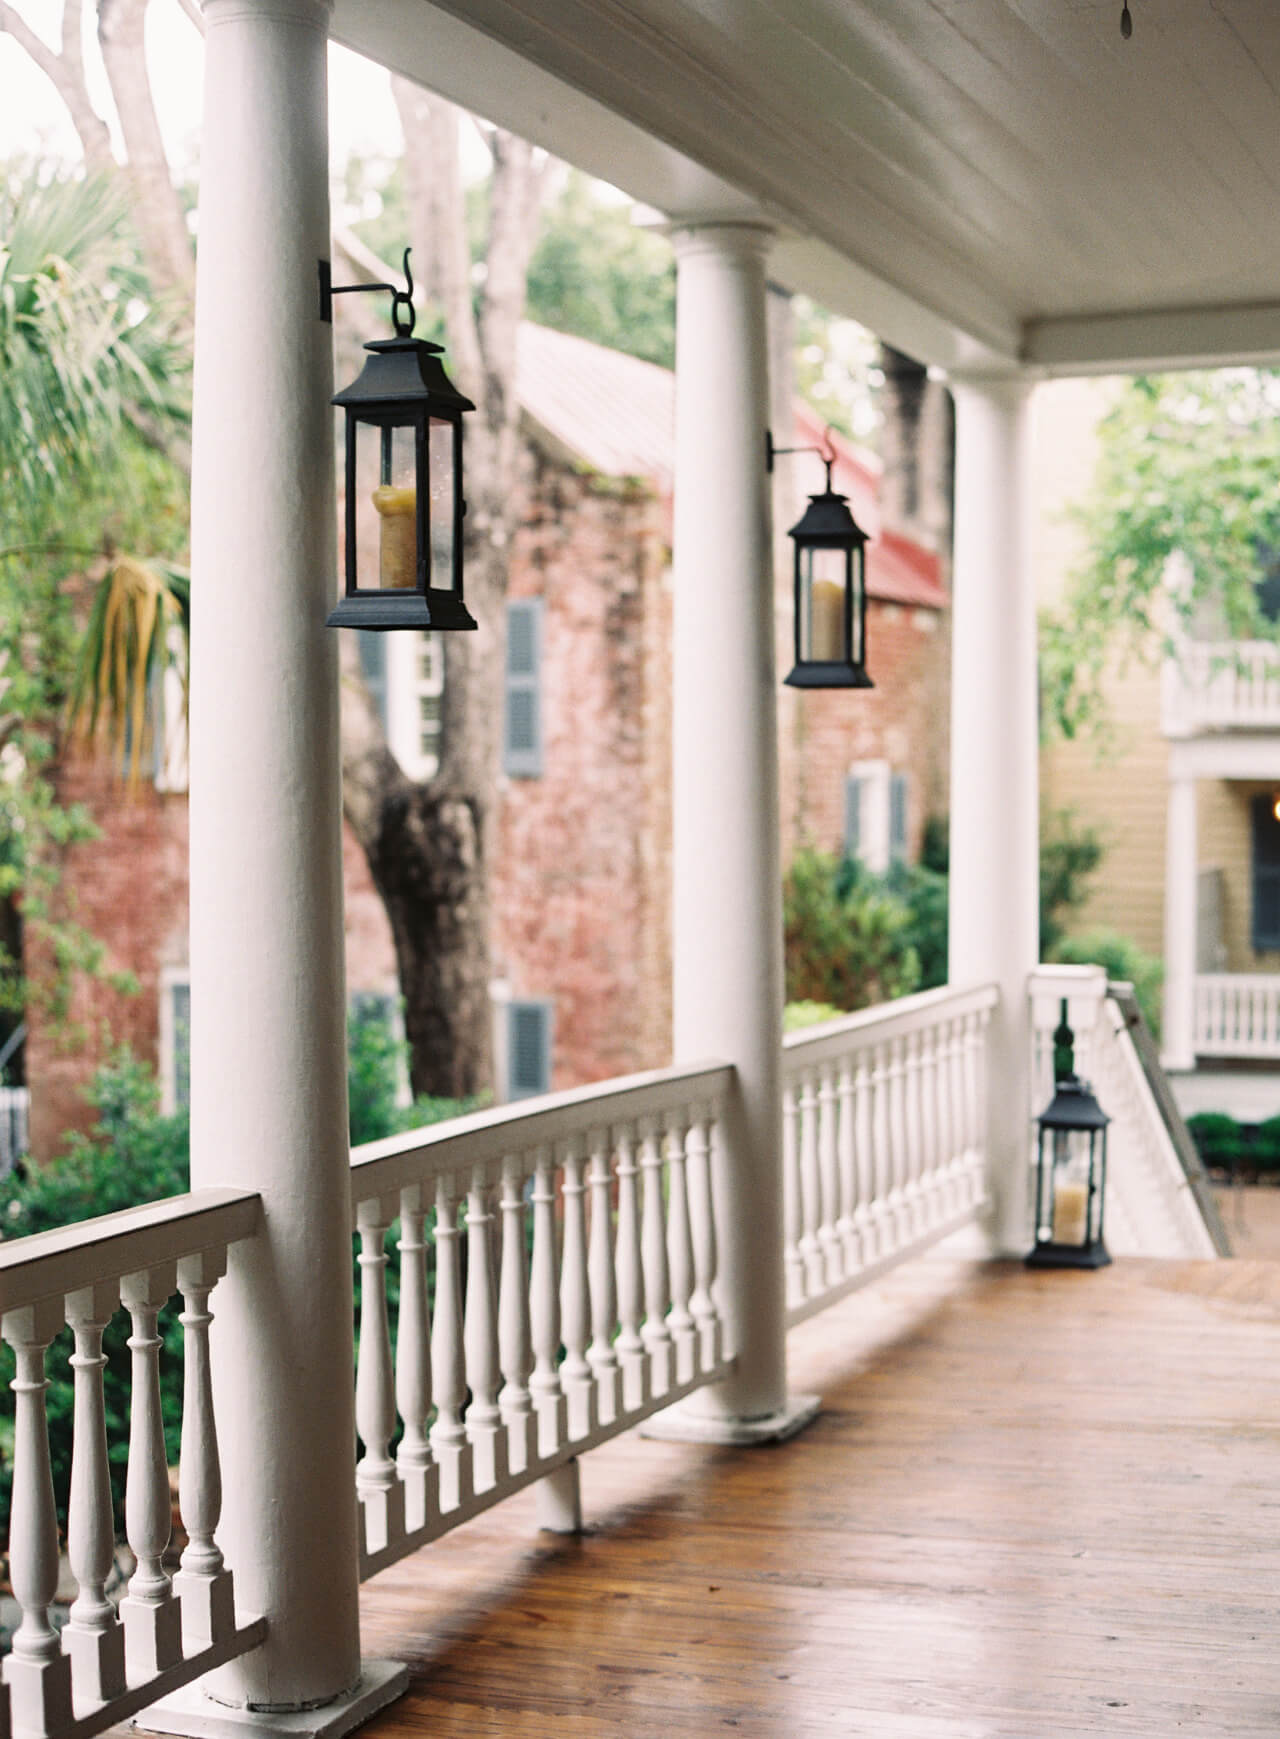 Porches always add charm to a home | Trending & Vintage Porch Lighting Ideas & Designs | FarmFoodFamily.com